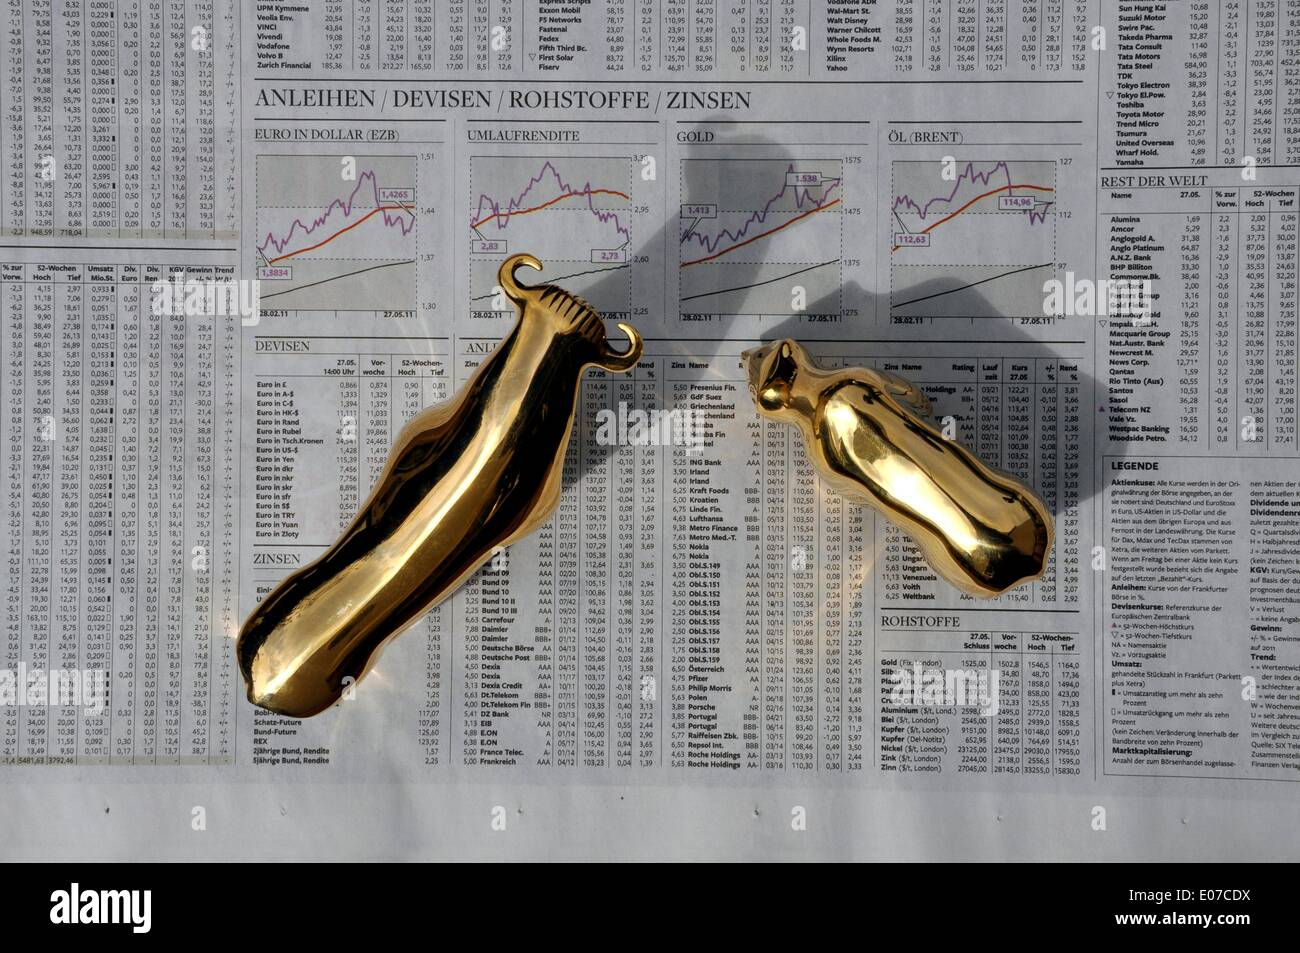 Illustration - Golden midget figures of the bear and the bull stand on security papers in Germany, 29 May 2011. Stock Photo